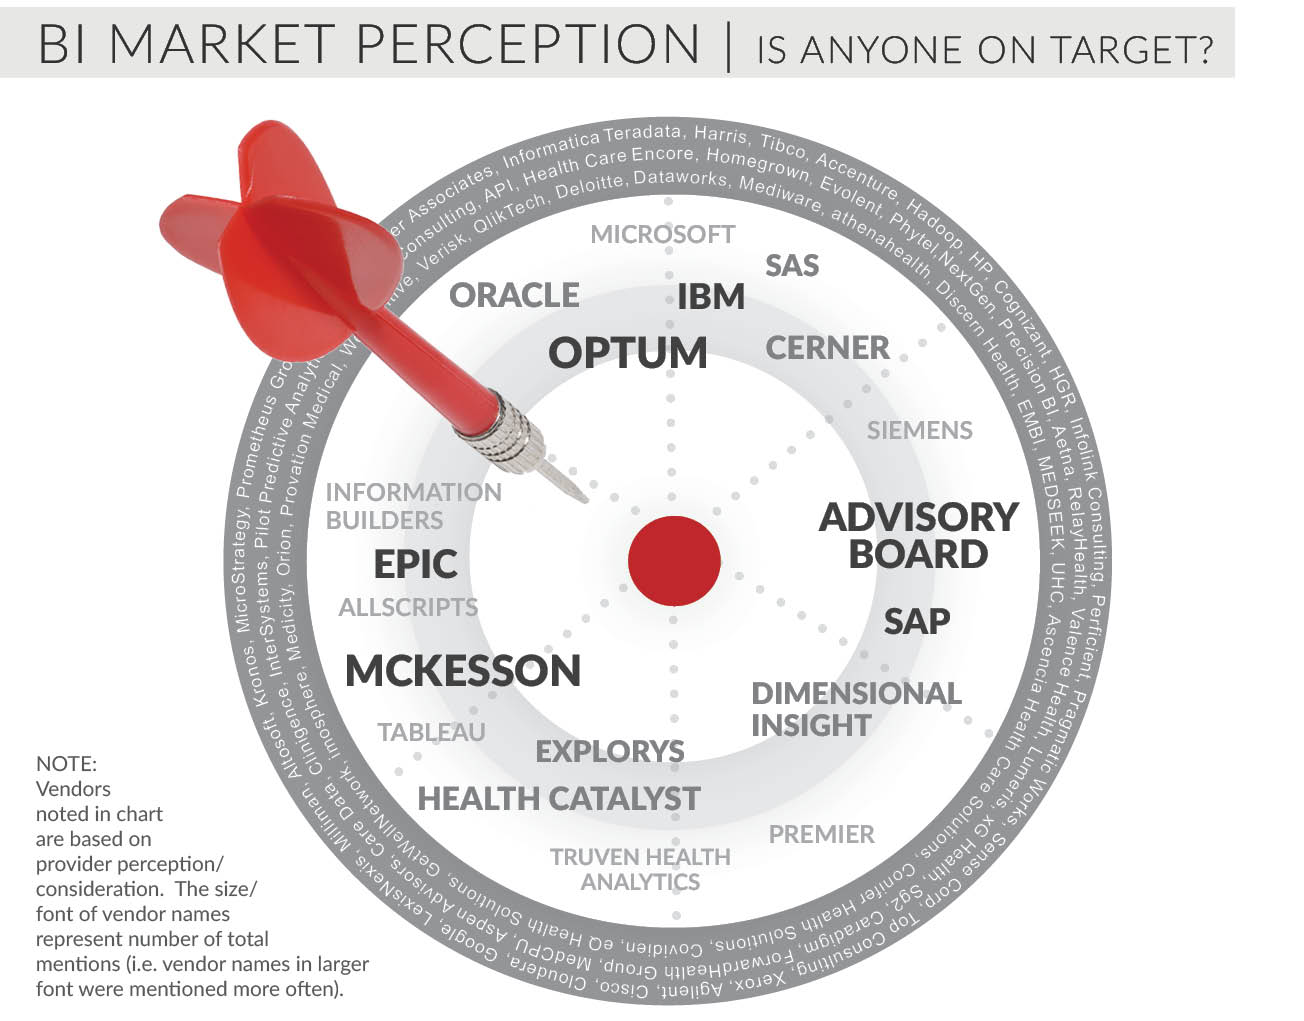 bi market perception is anyone on target